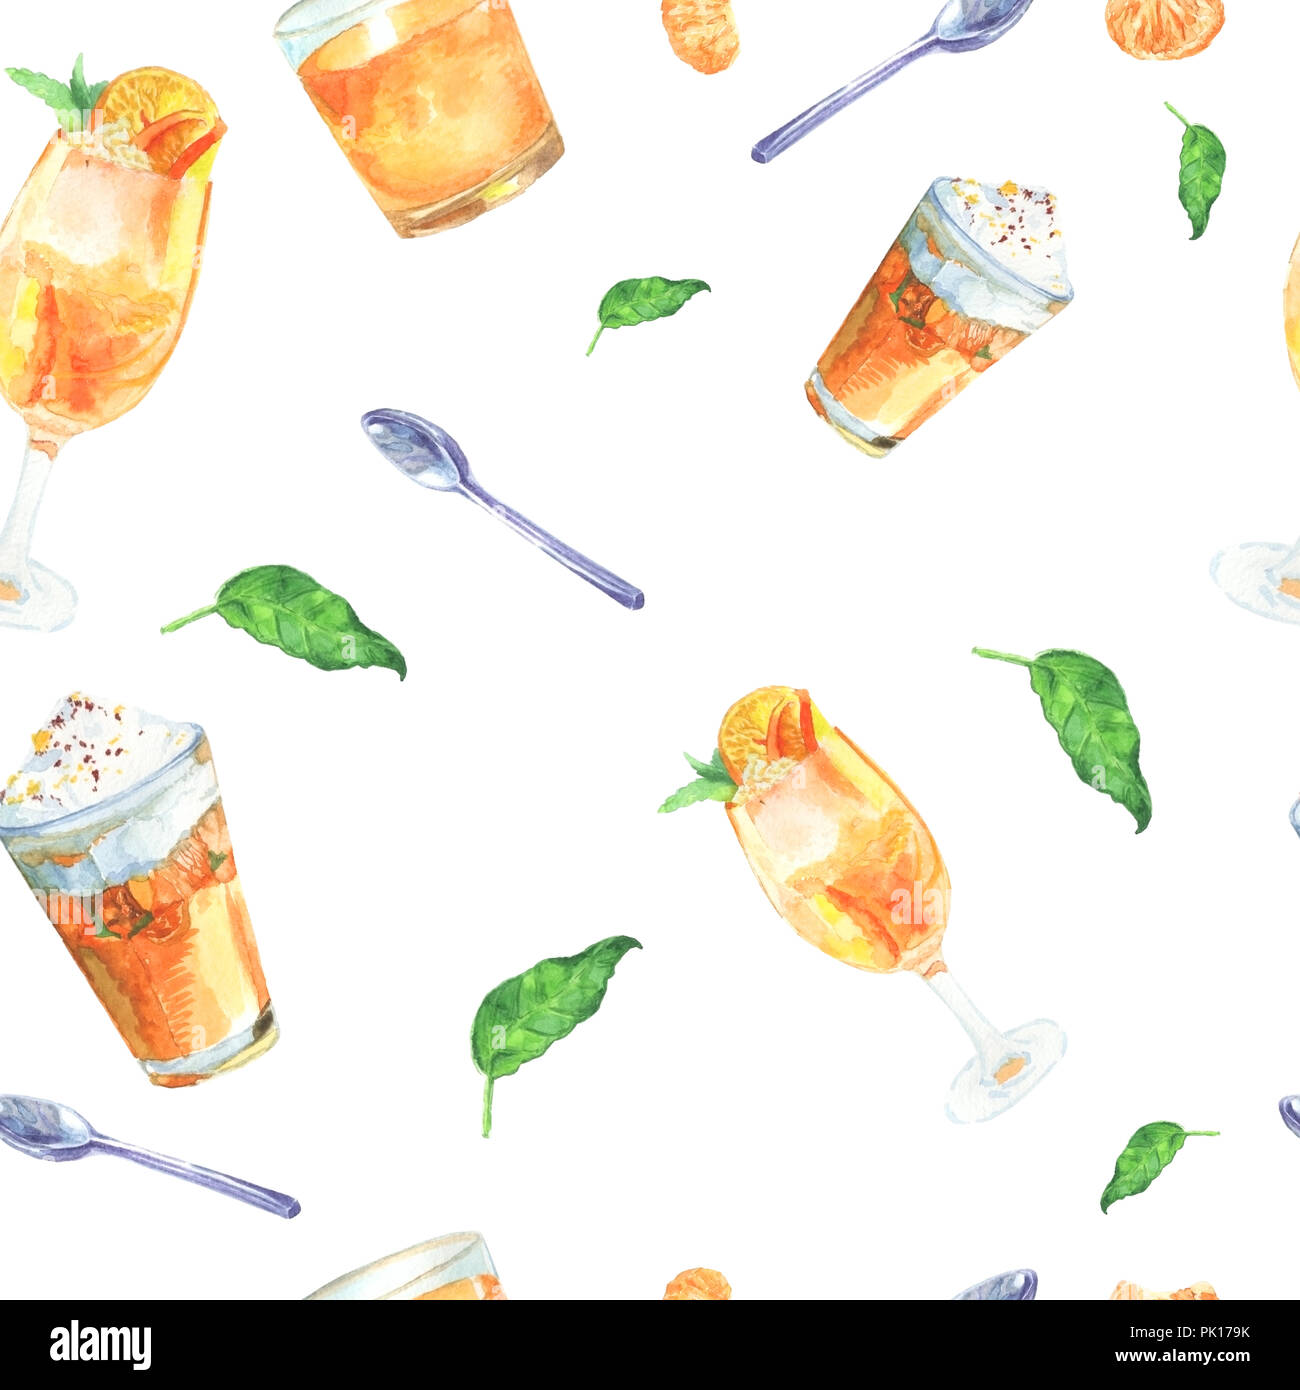 Seamless Pattern Tangerine Cocktail Spoon And Leaves Handmade Watercolor Glasses Leaves And Spoon For Design Templates For Printing On Paper And Stock Photo Alamy